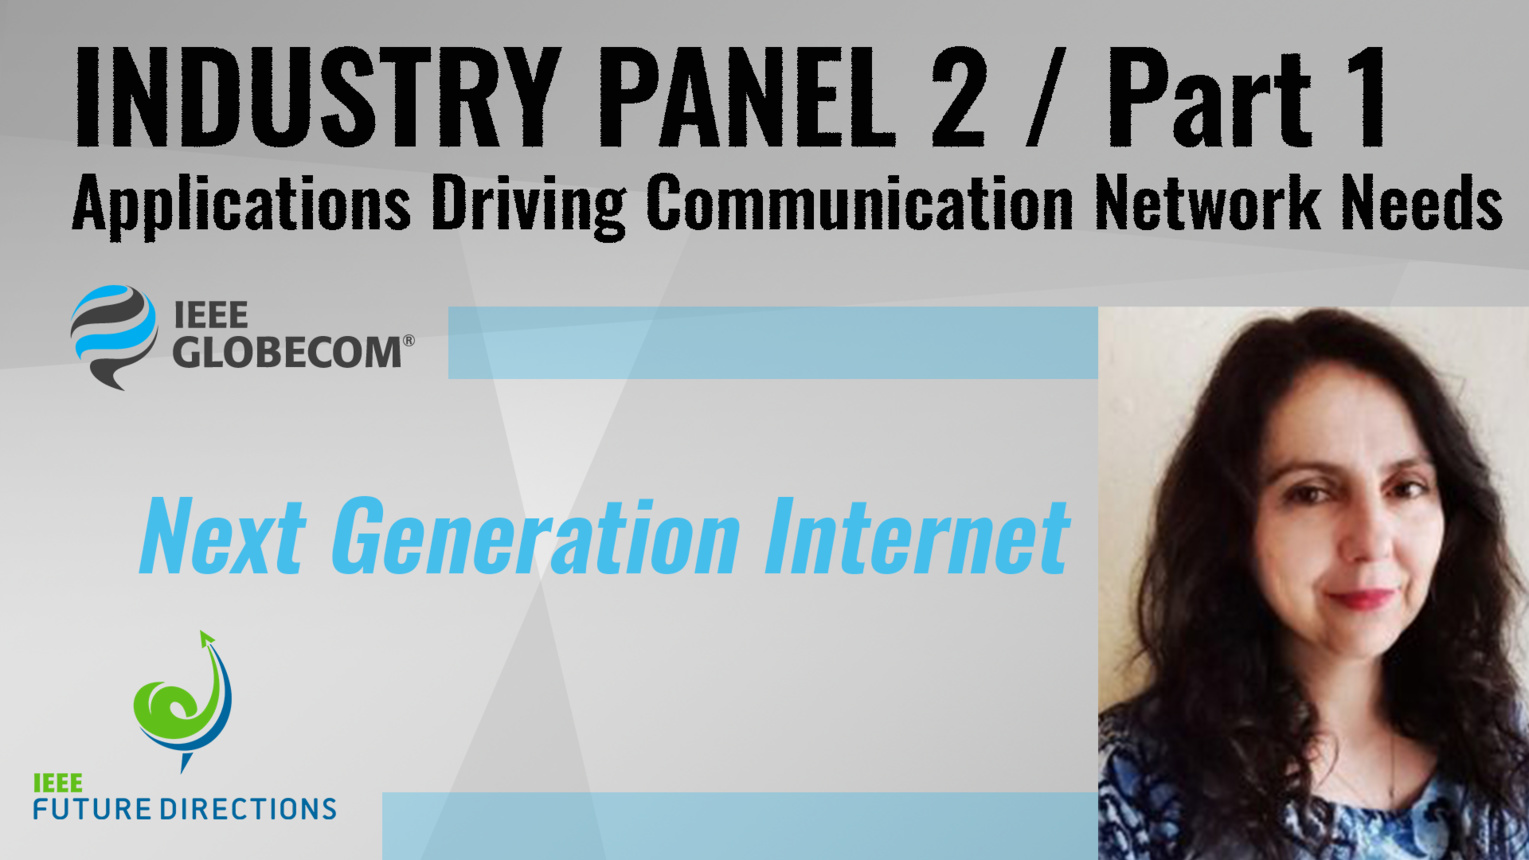 Pt. 1: Next Generation Internet - Yanick Pouffary - Industry Panel 2, IEEE Globecom, 2019